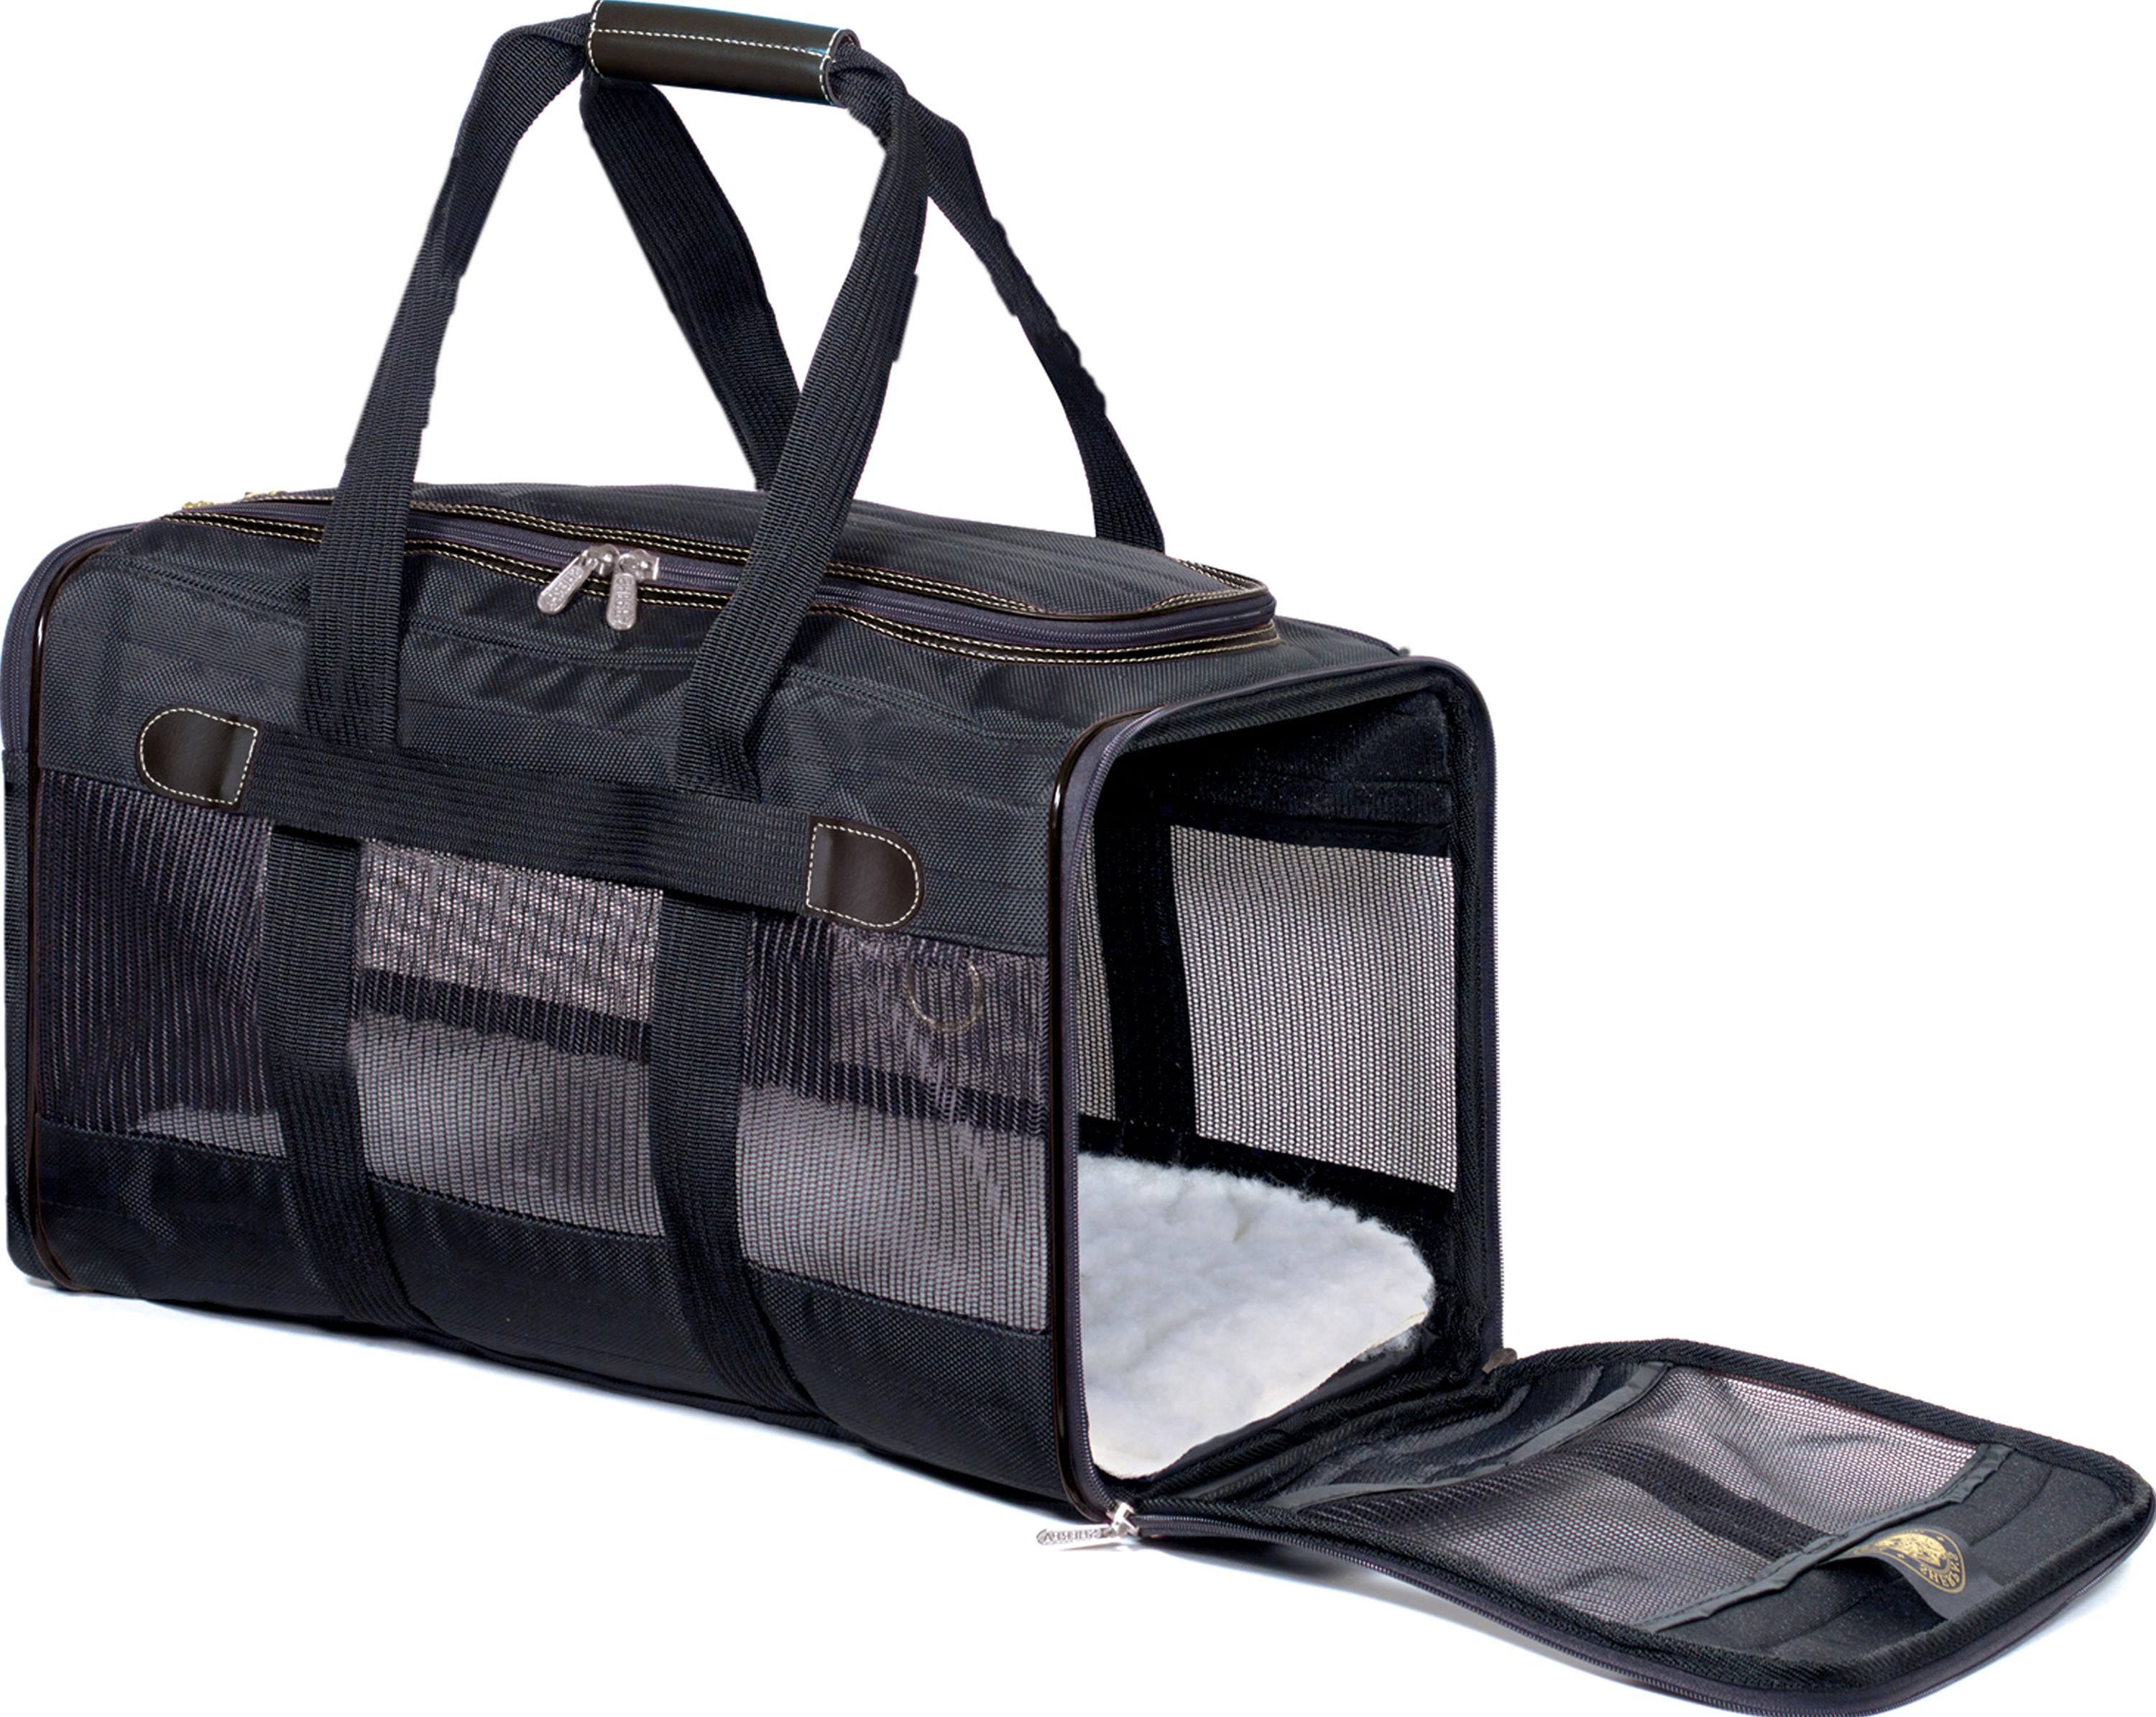 Sherpa Original Deluxe Pet Carrier - Large, Black